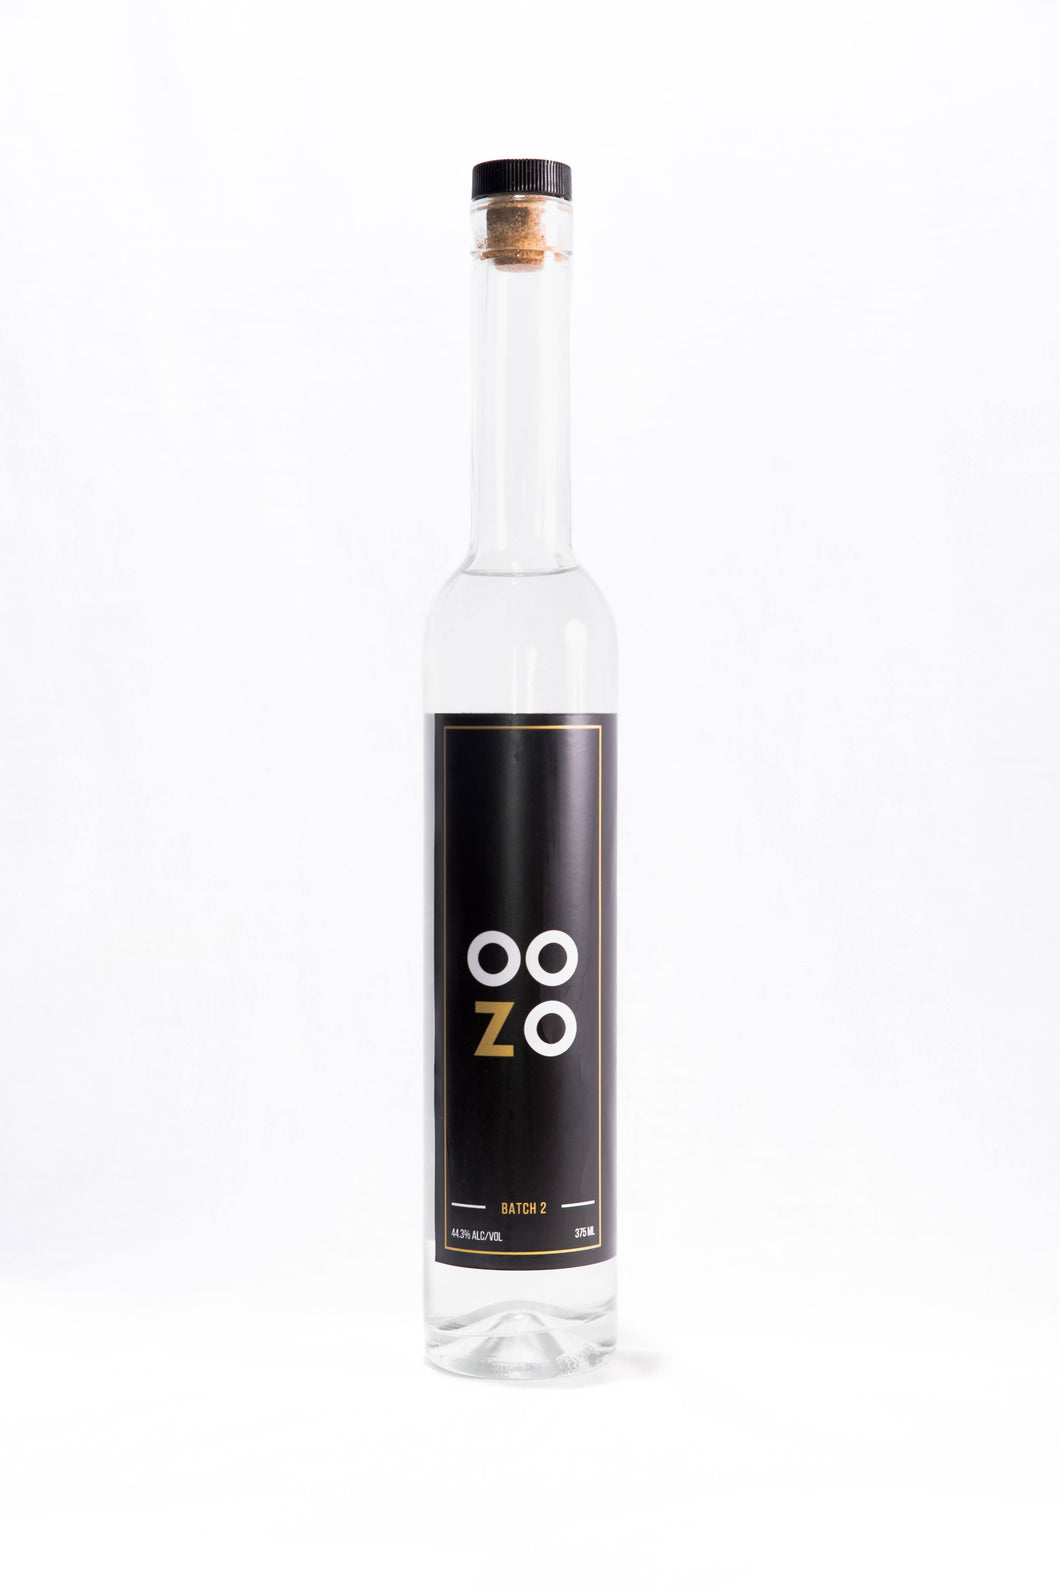 OOZO - Batch 2 (375mL)